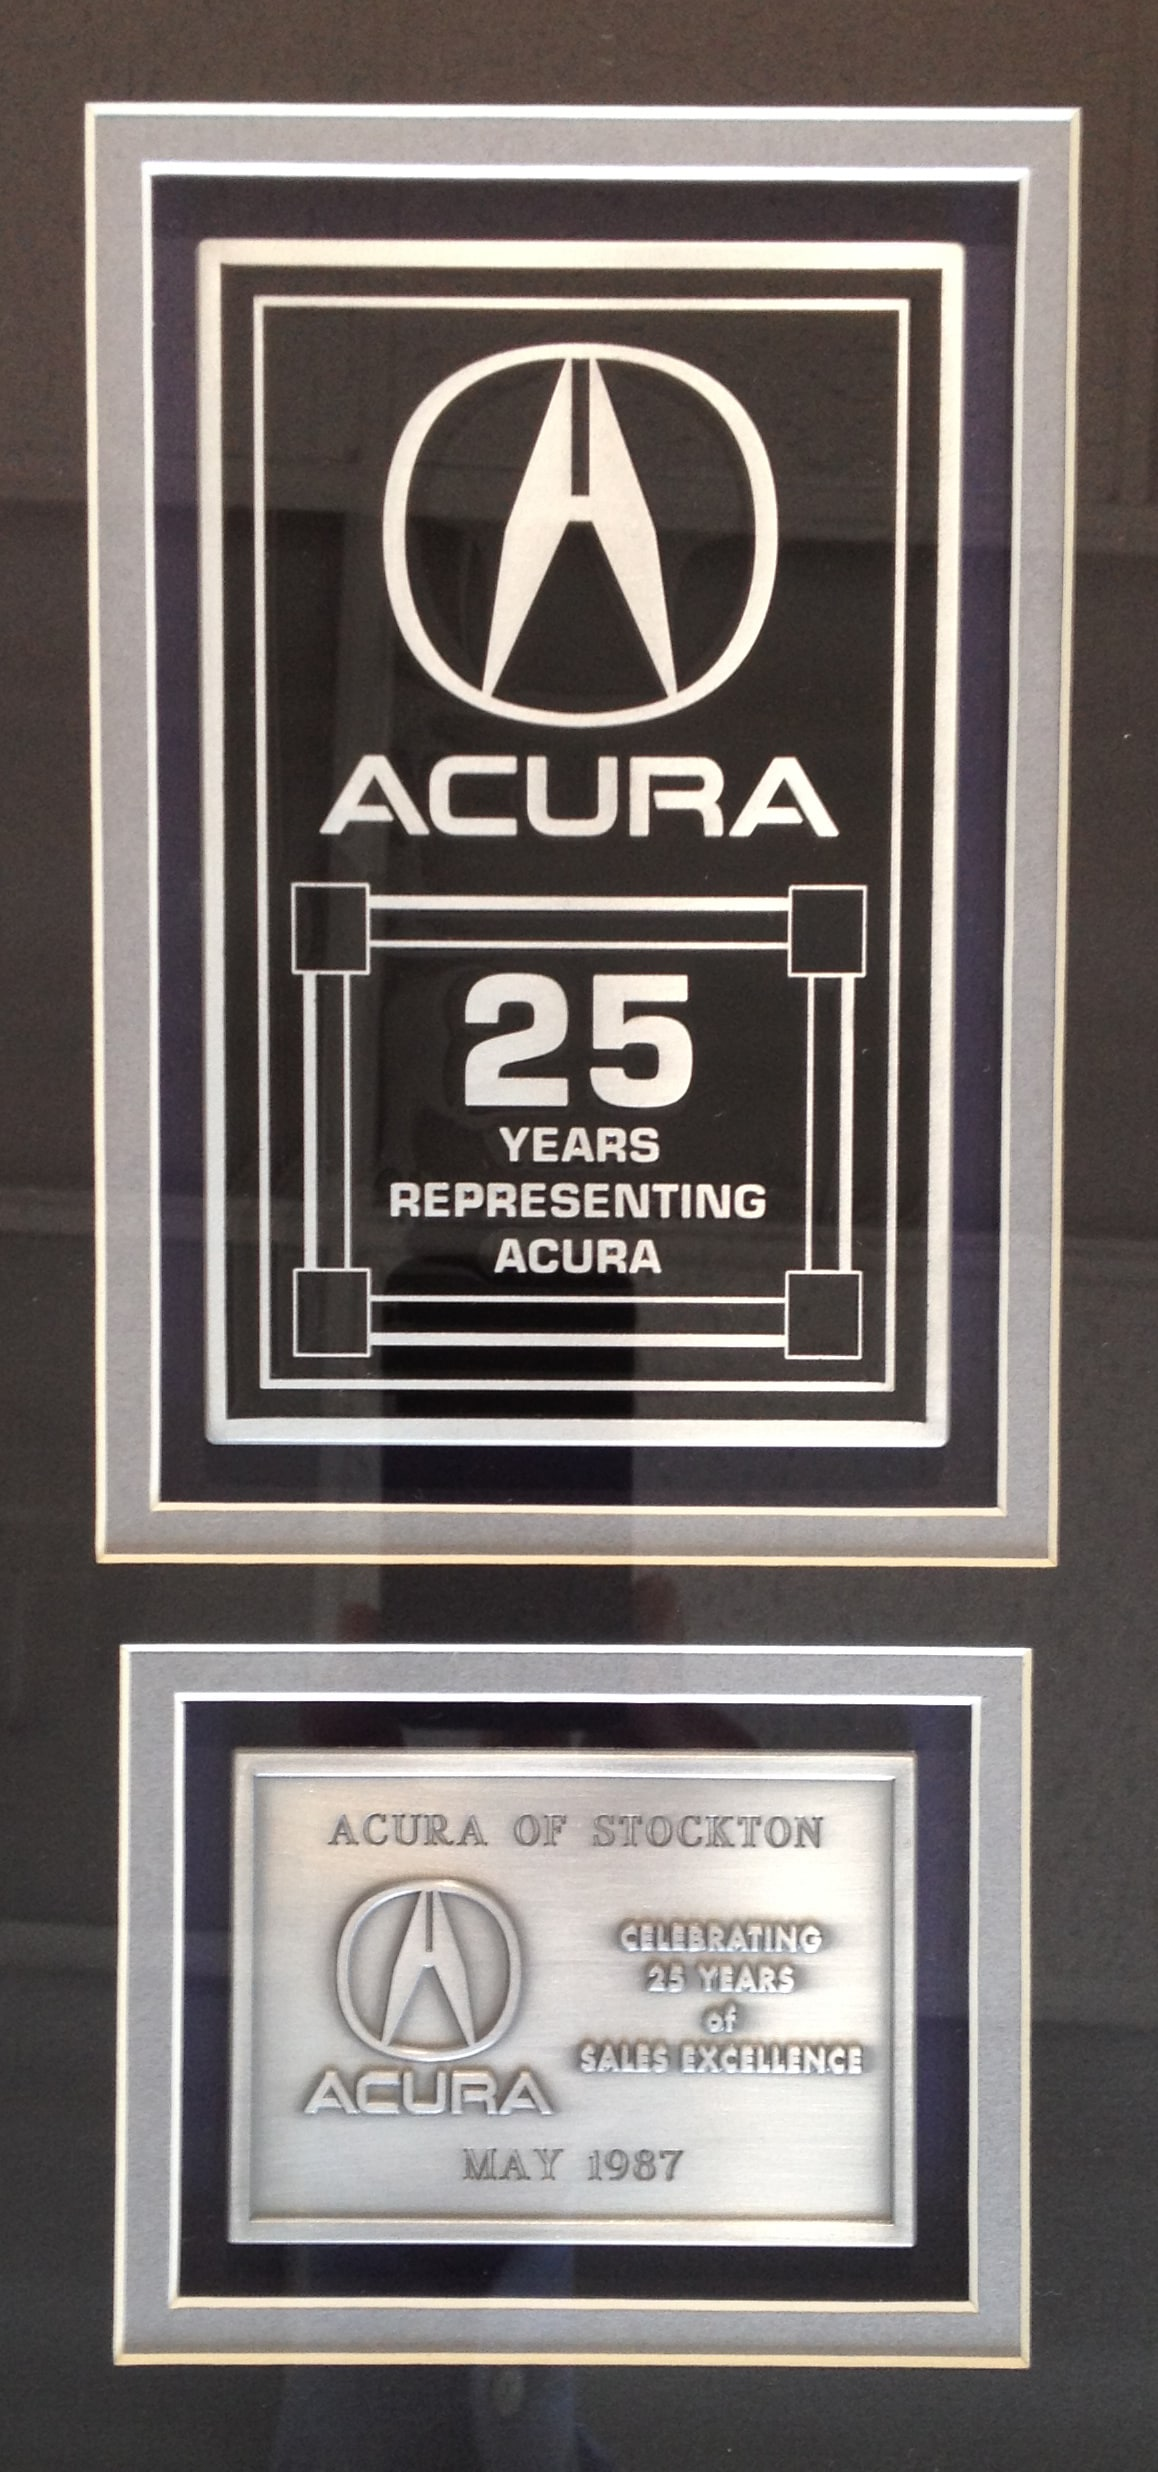 About Acura of Stockton